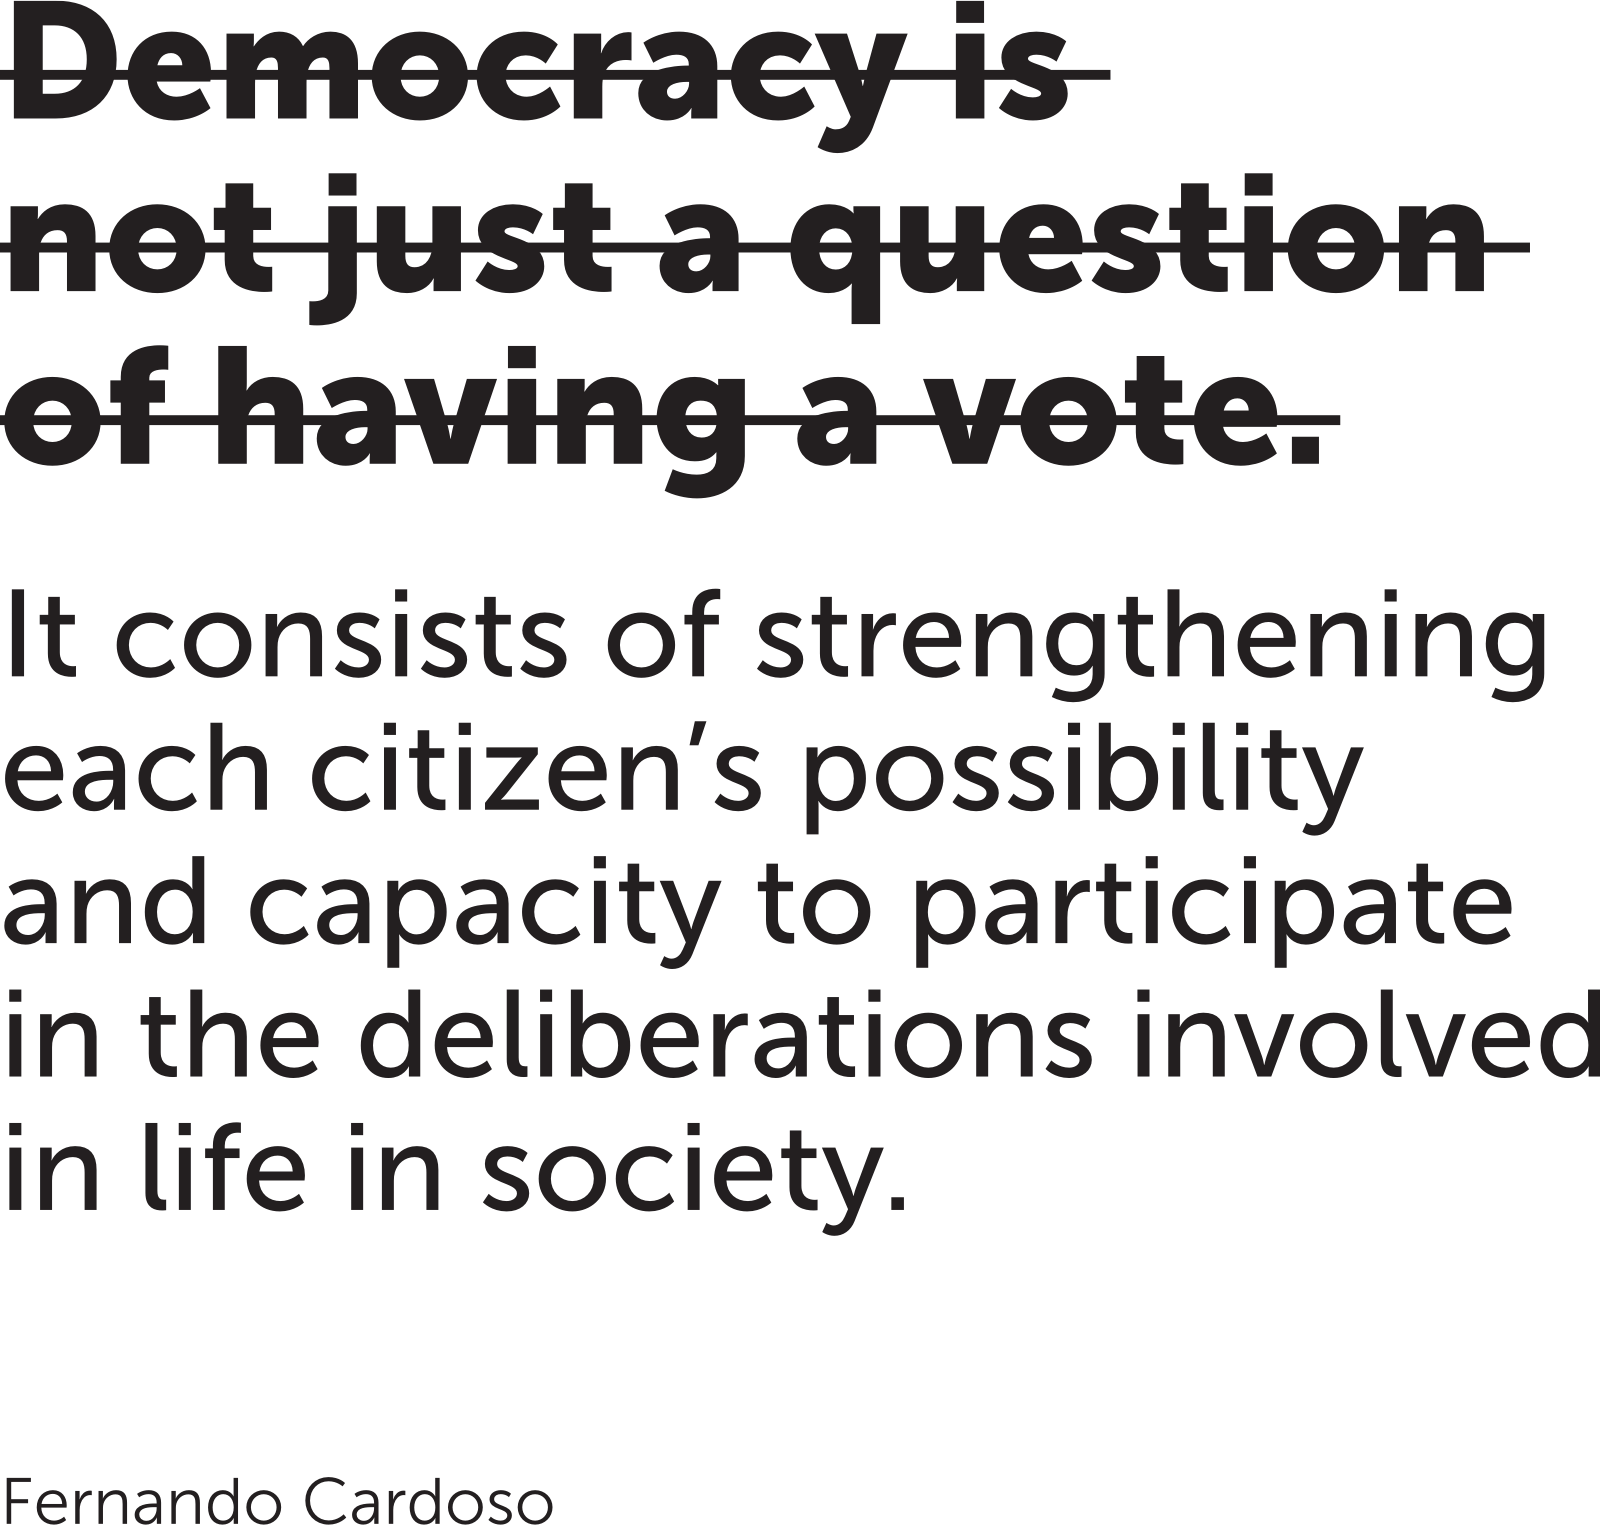 Quotation from Fernando Cardoso: Democracy is not just a question of having a vote. It consists of strengthening each citizen's possibility and capacity to participate in the deliberations involved in life in society.